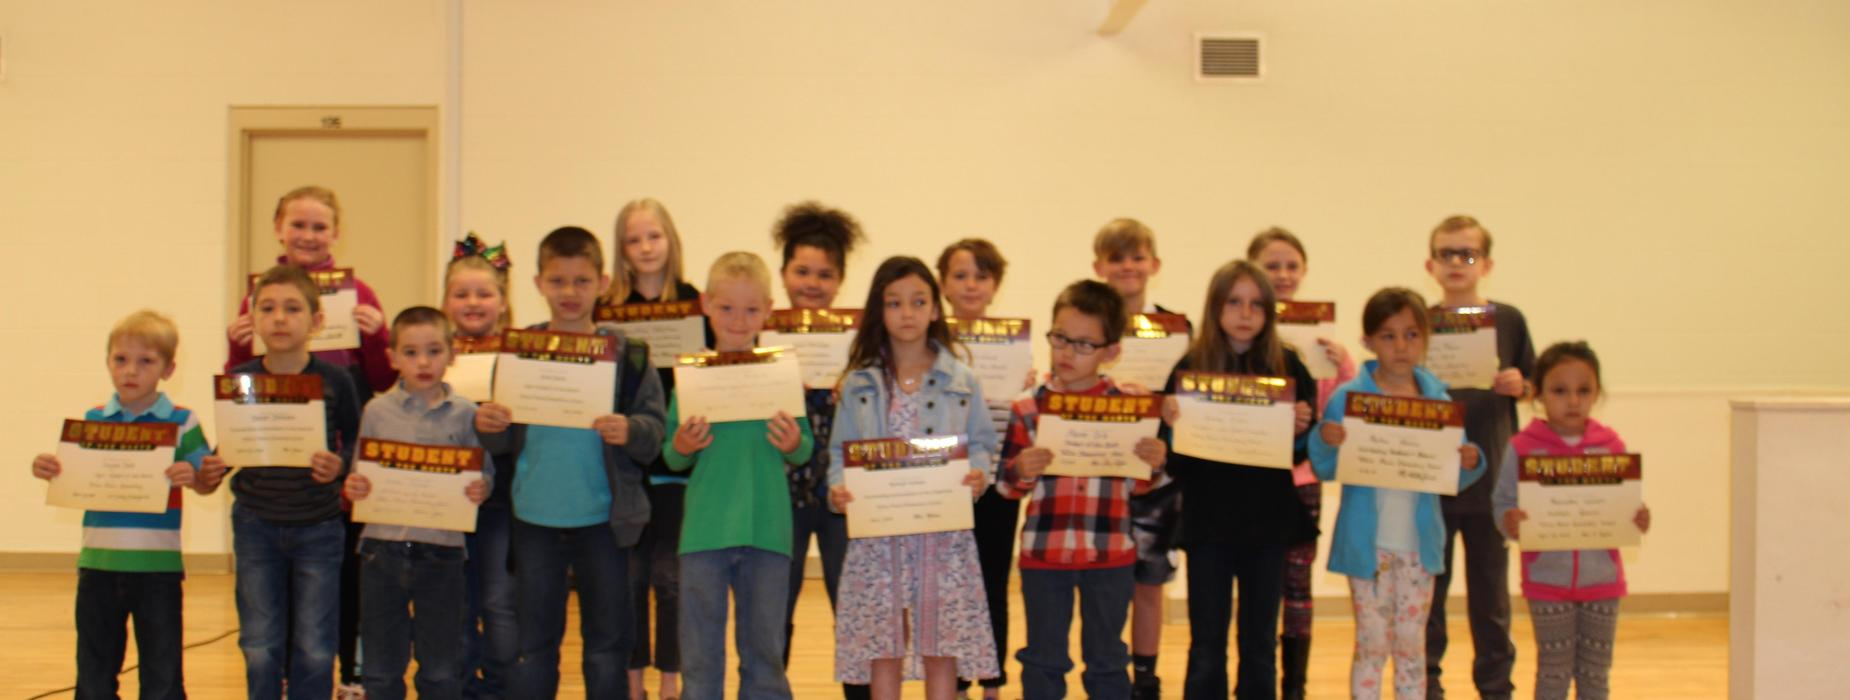 Student of the Month Ceremony